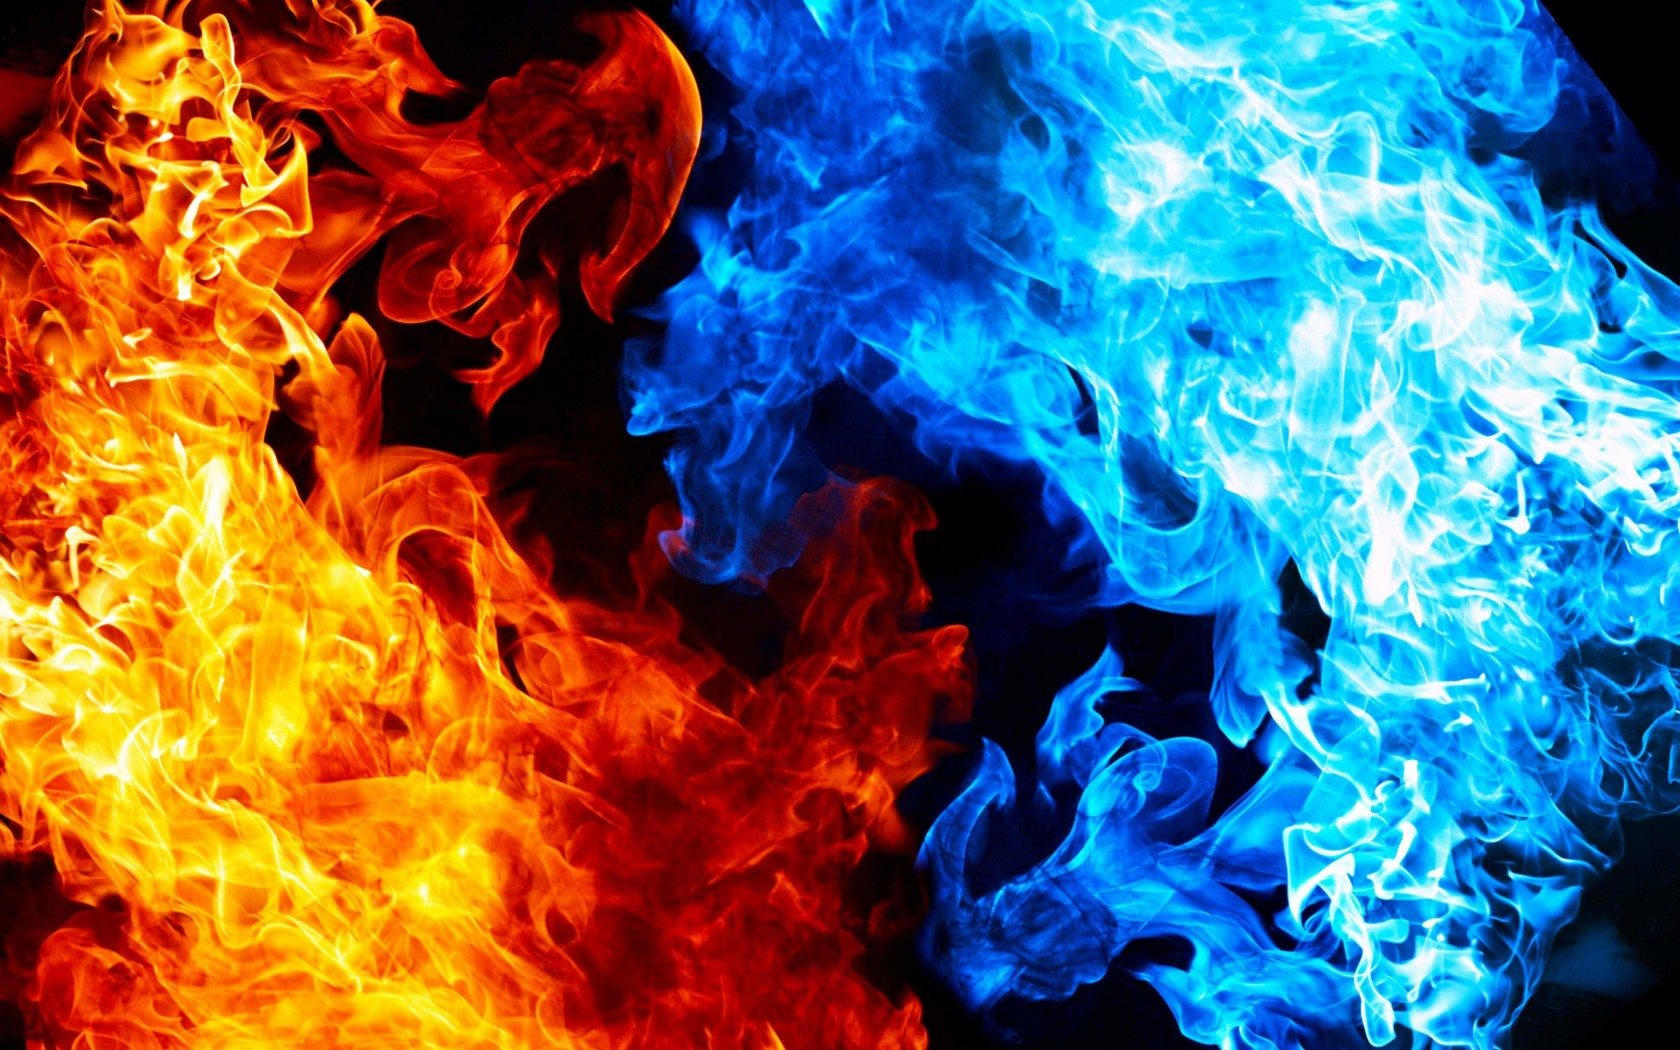 Blue And Red Fire Wallpaper for Desktop 1680x1050